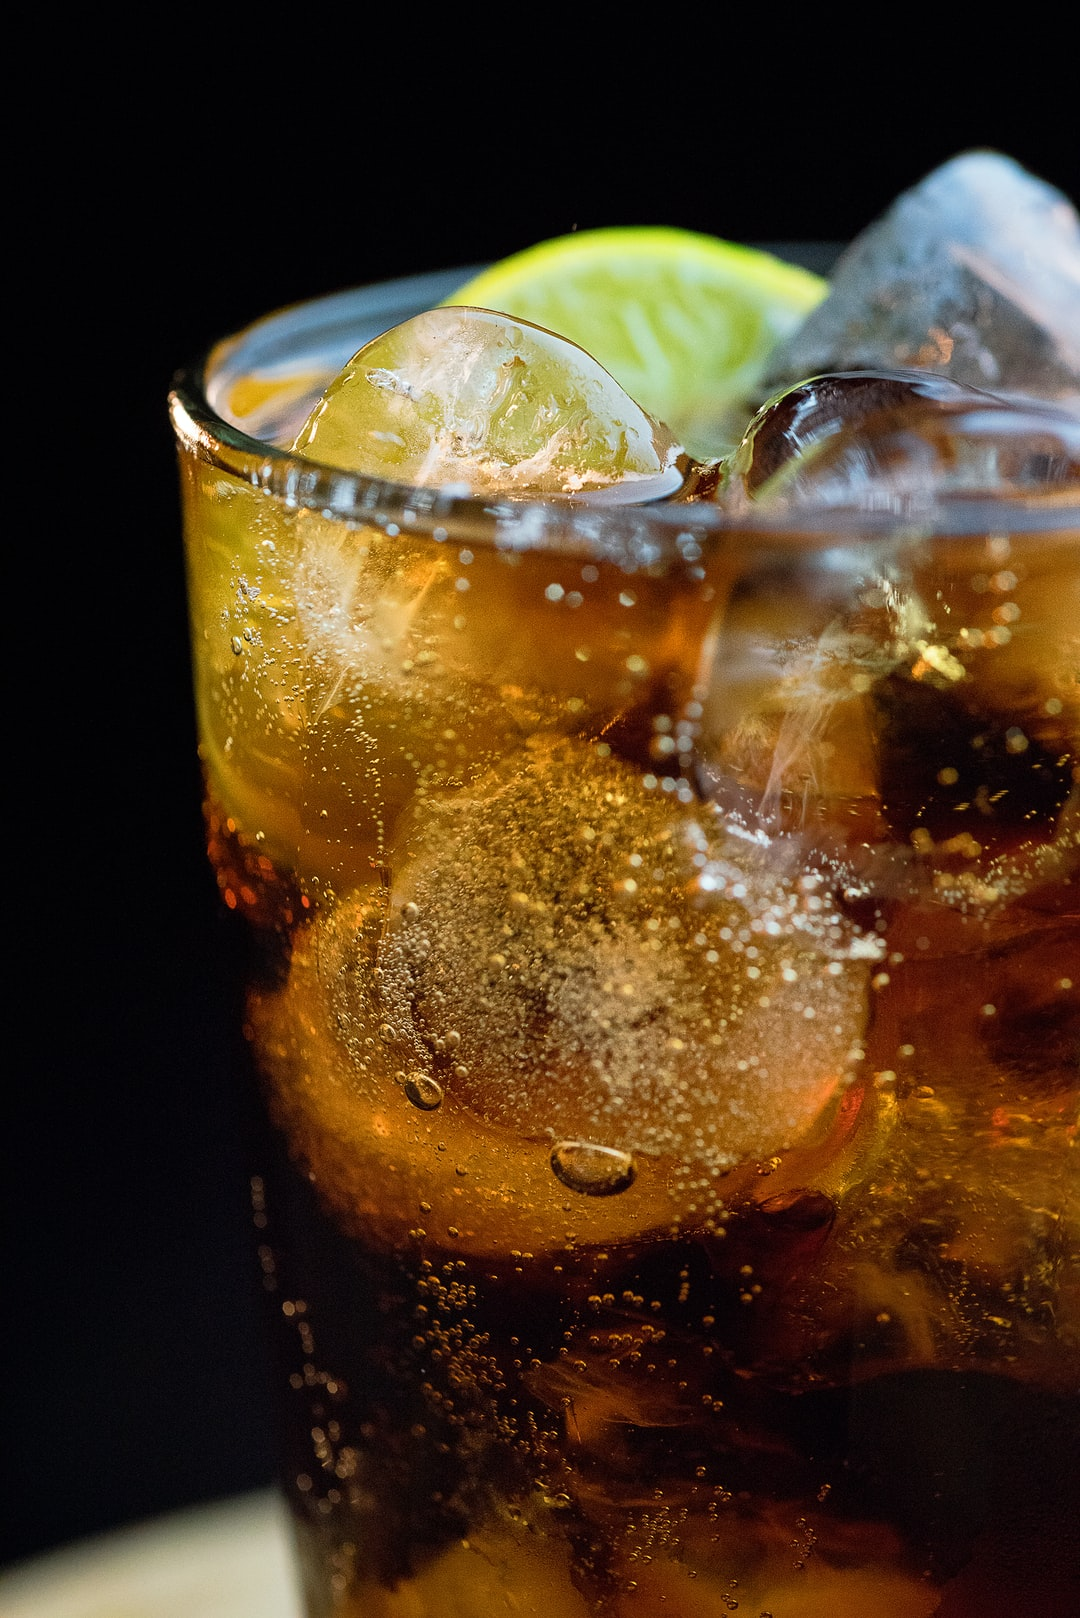 Cola with ice and lime on a dark background.